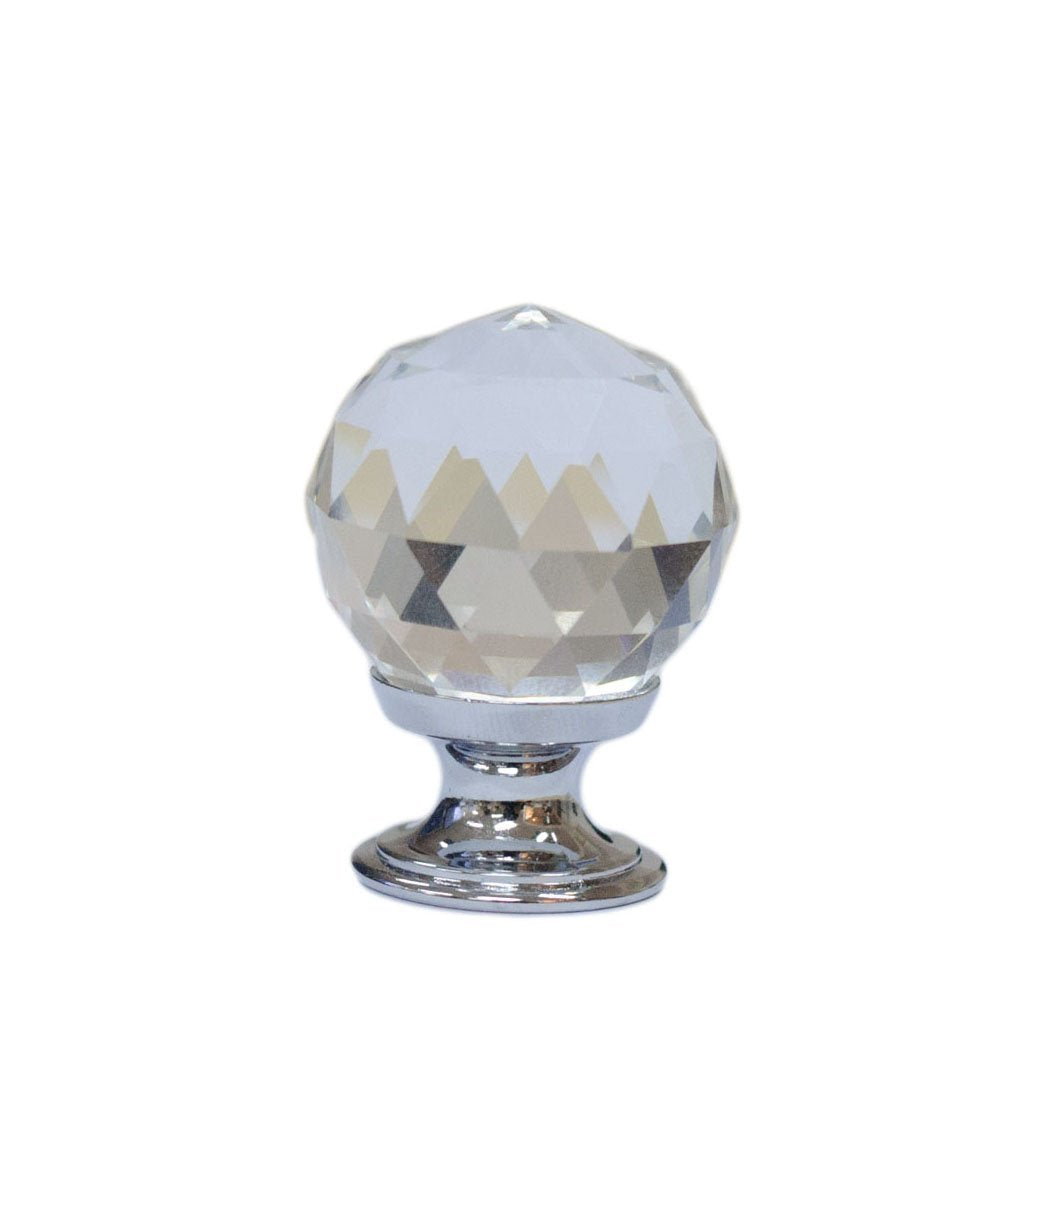 Vintage Style Diamond Shaped Glass Cabinet Hardware Knob 1-3/16 Inch Diameter, Zinc Alloy Base